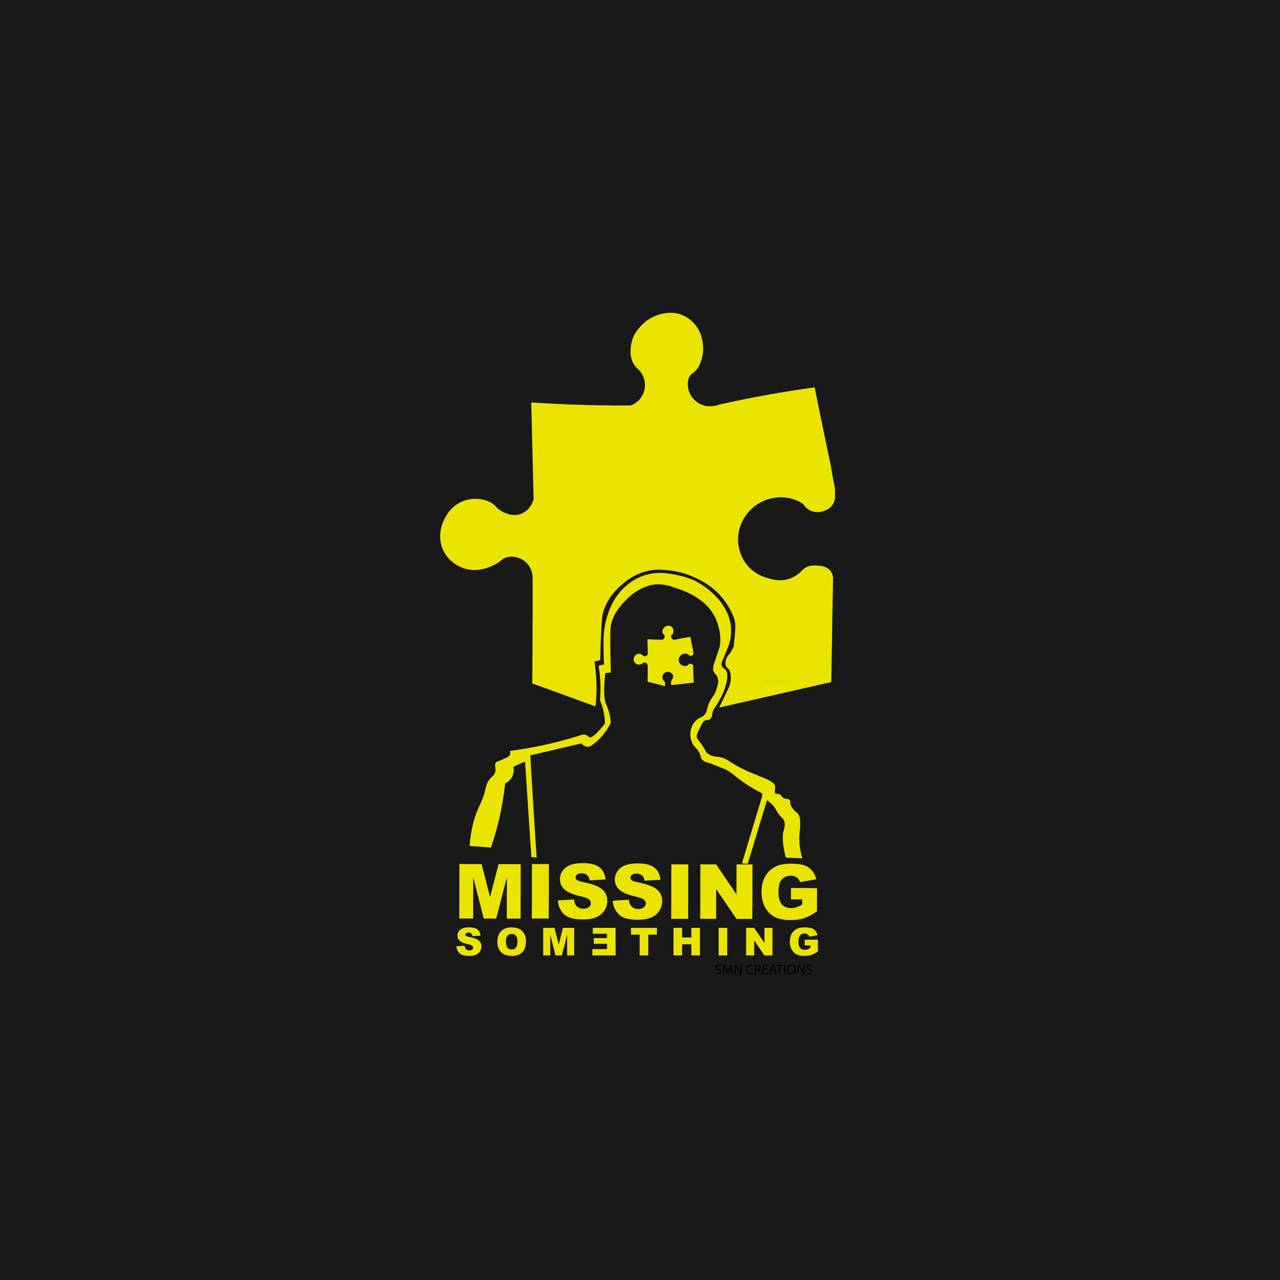 Missing Something